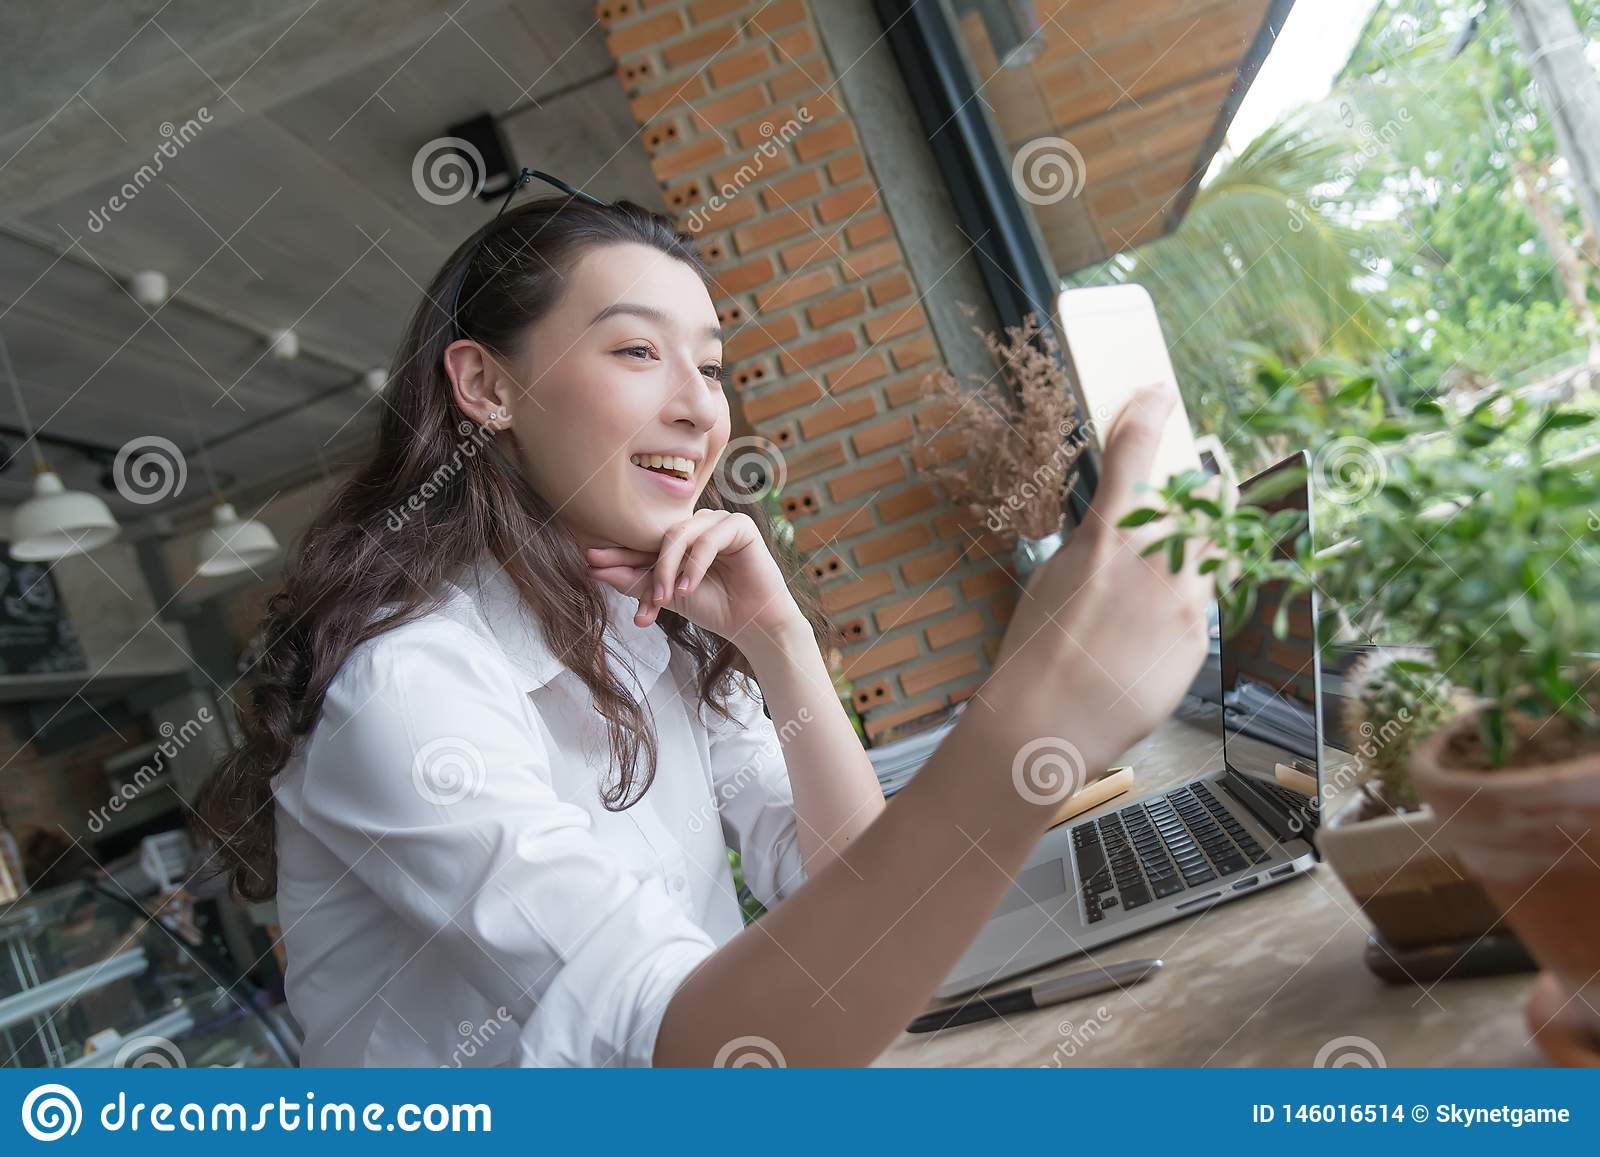 Business woman taking selfie on the Smart phone in coffee break time at her work place.young business online marketing concept